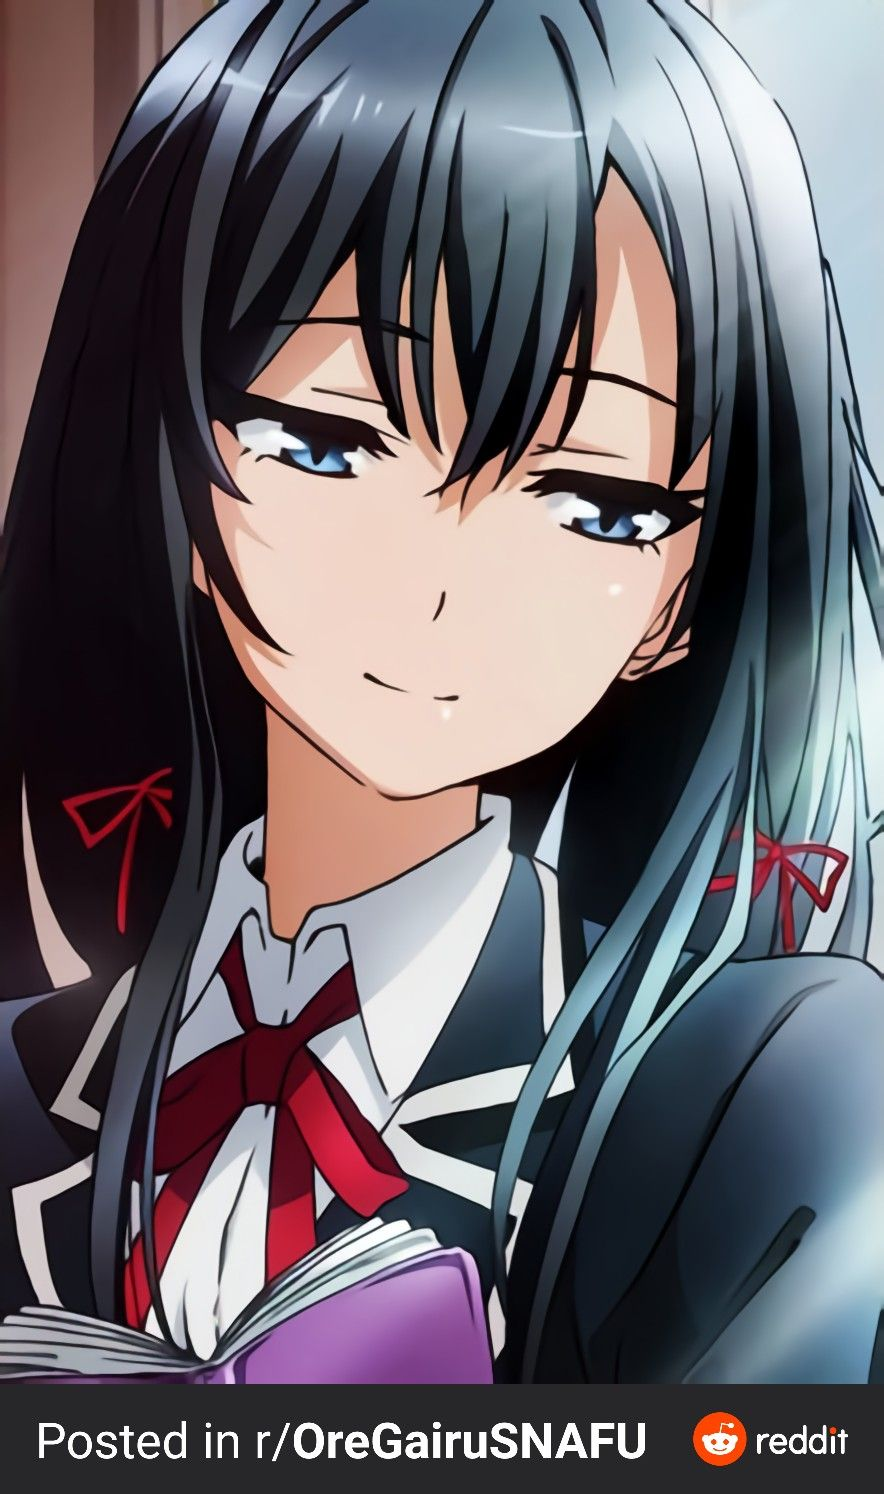 Pin by Satoko on アニメ in 2020 Anime, Female anime, Anime